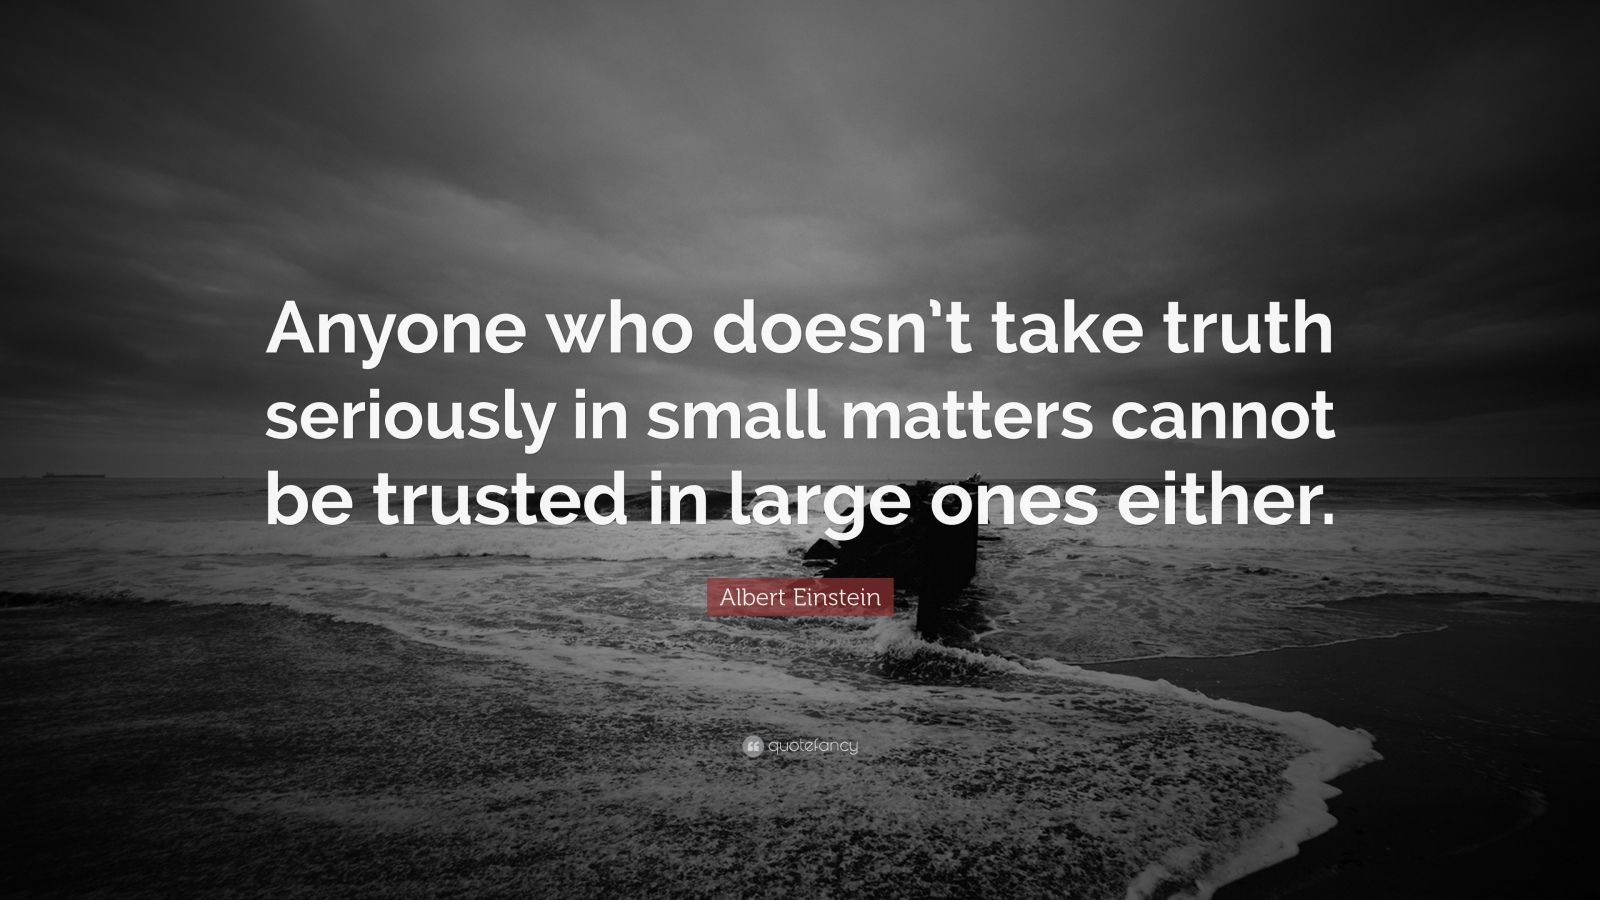 "Honesty Quotes: ""Anyone who doesn't take truth seriously in small matters cannot be trusted in large ones either."" — Albert Einstein"